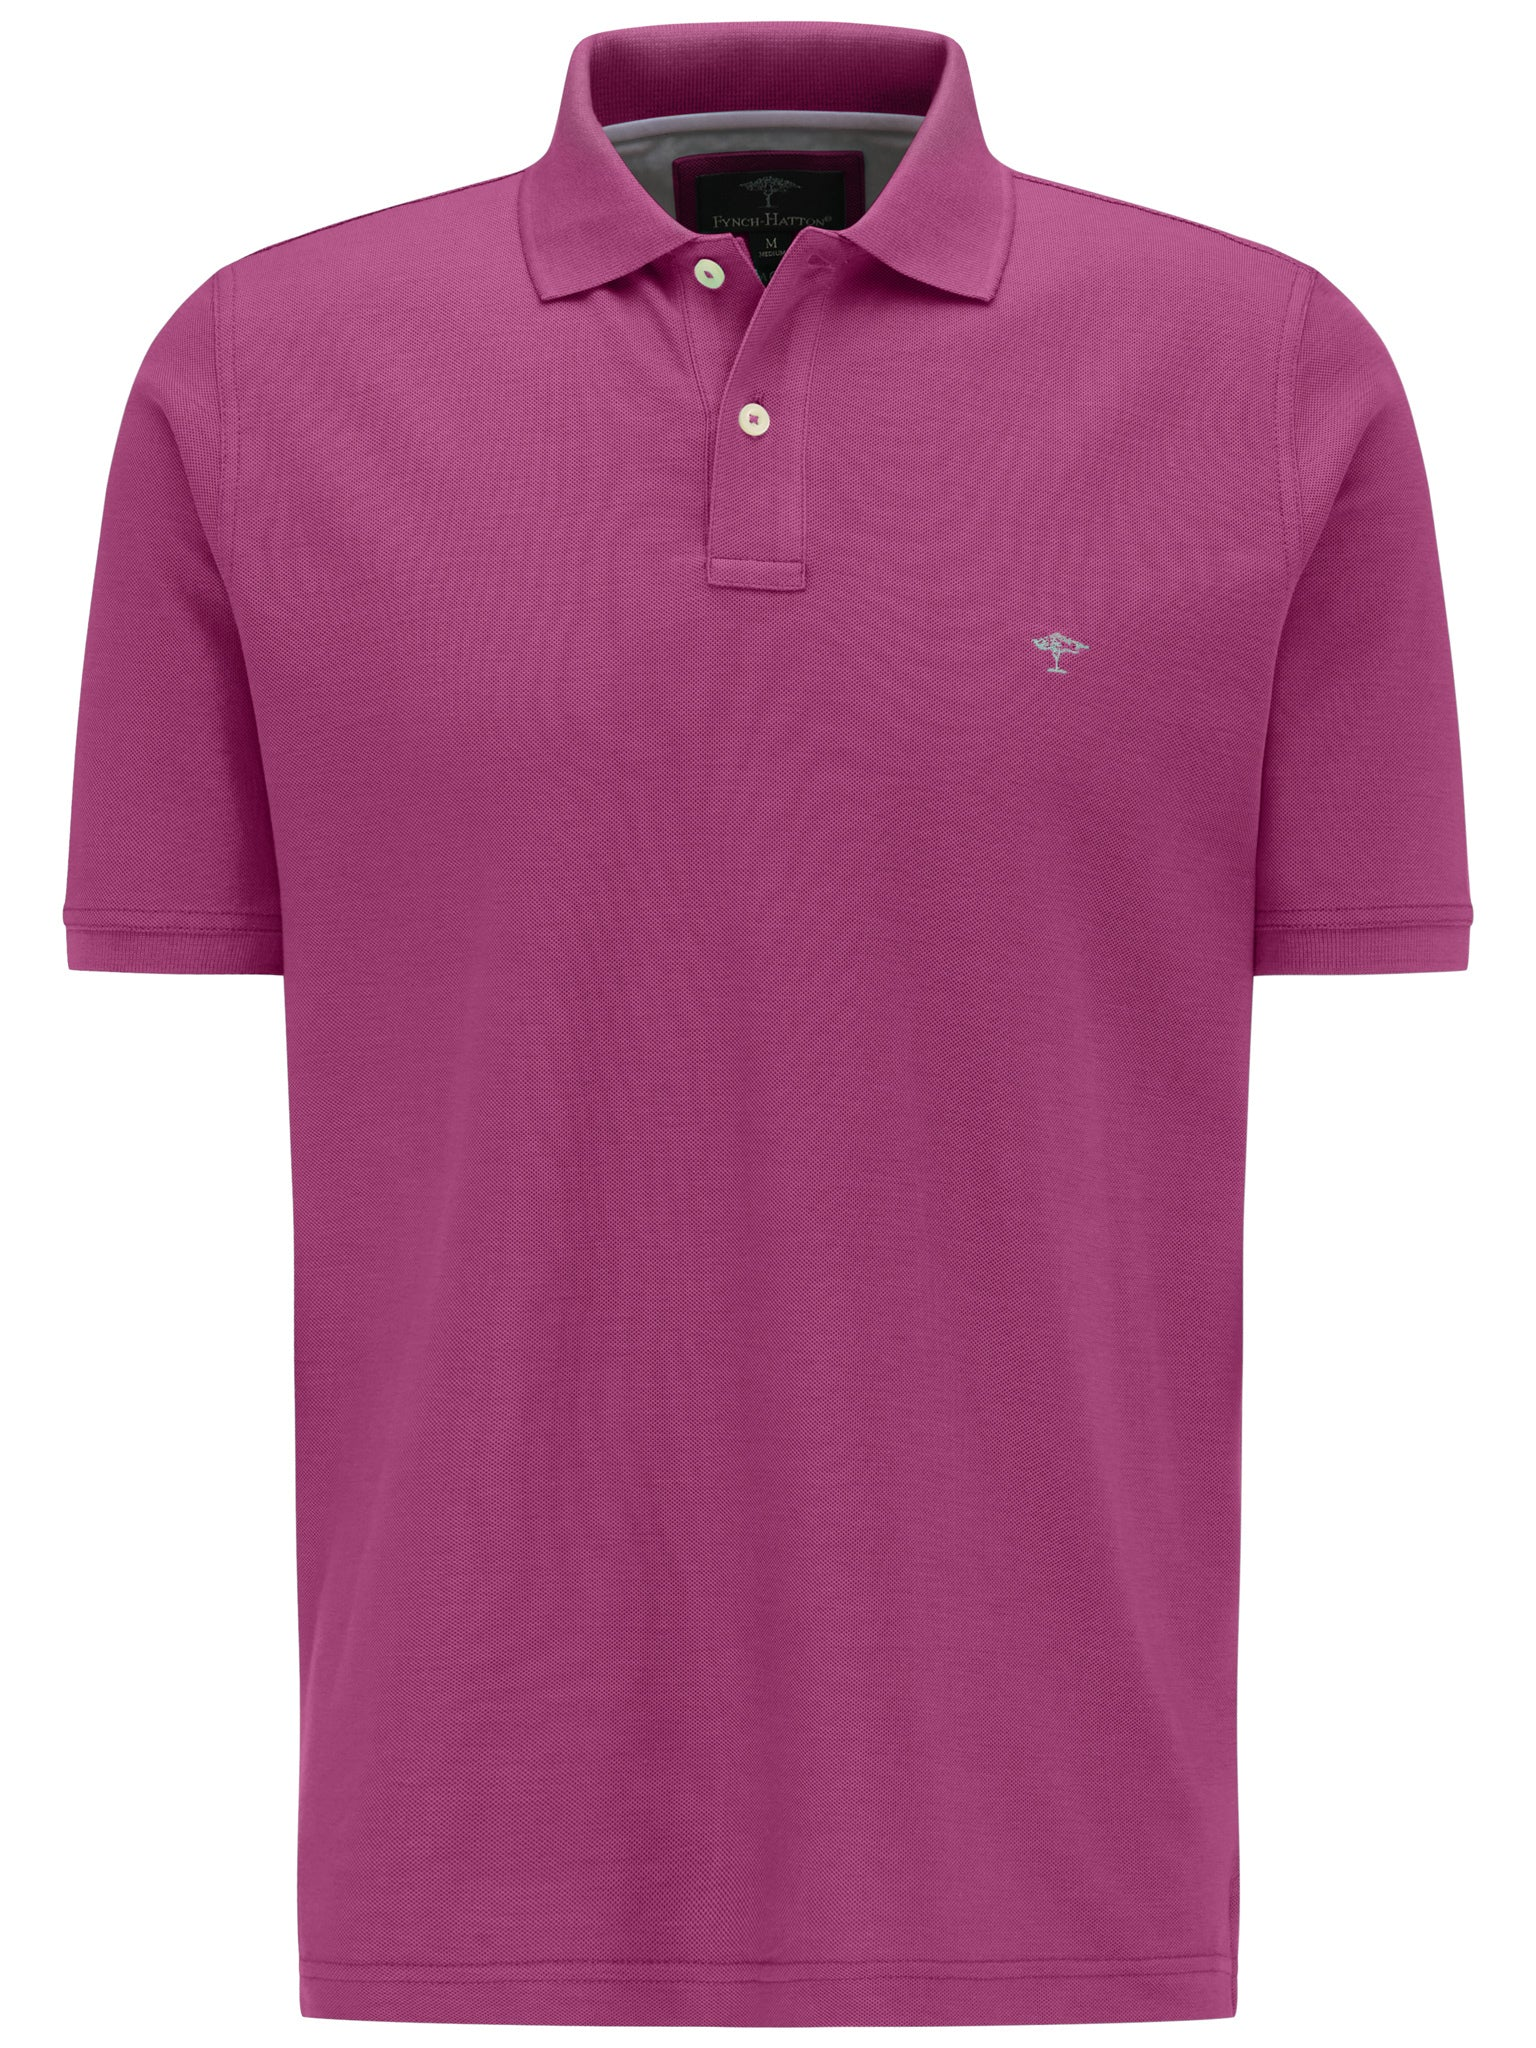 Fynch Hatton Basic Polo Top for Men in Blossom